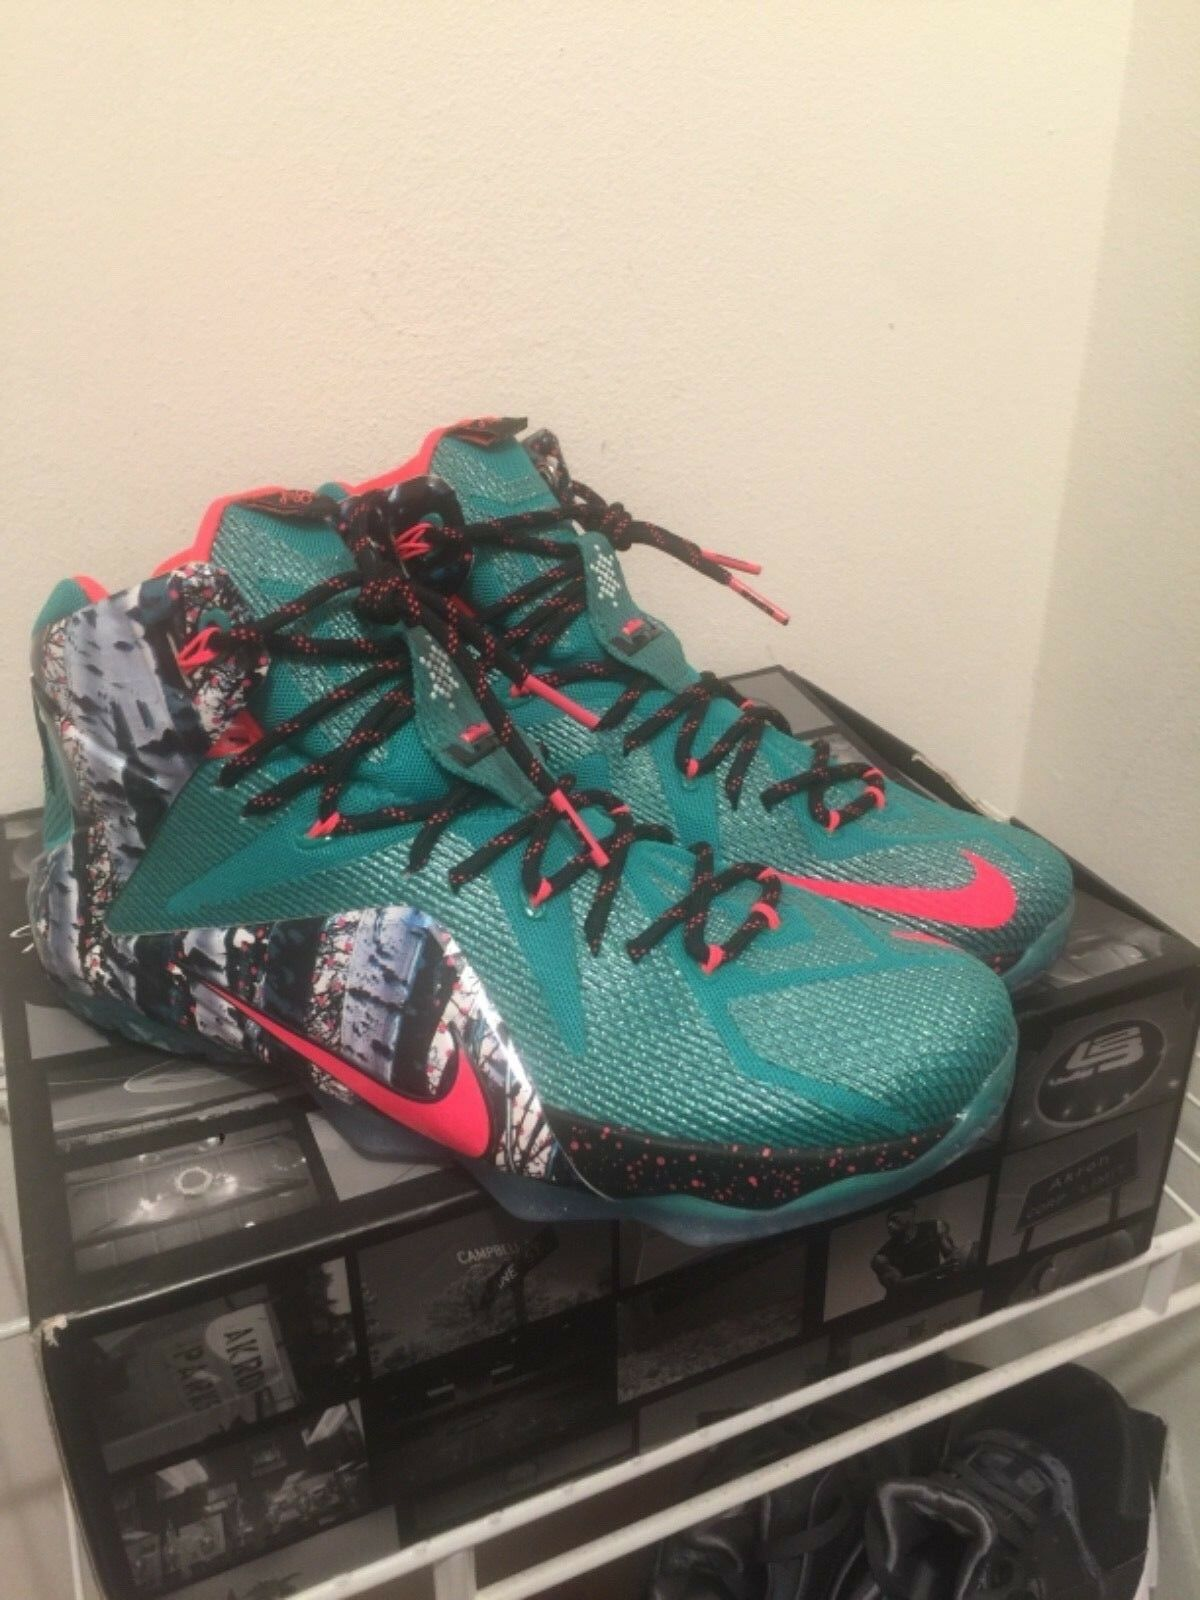 Nike Lebron 12 XII XMAS Men's Basketball shoes 707558-363 Size 13 Jordan xi x vi